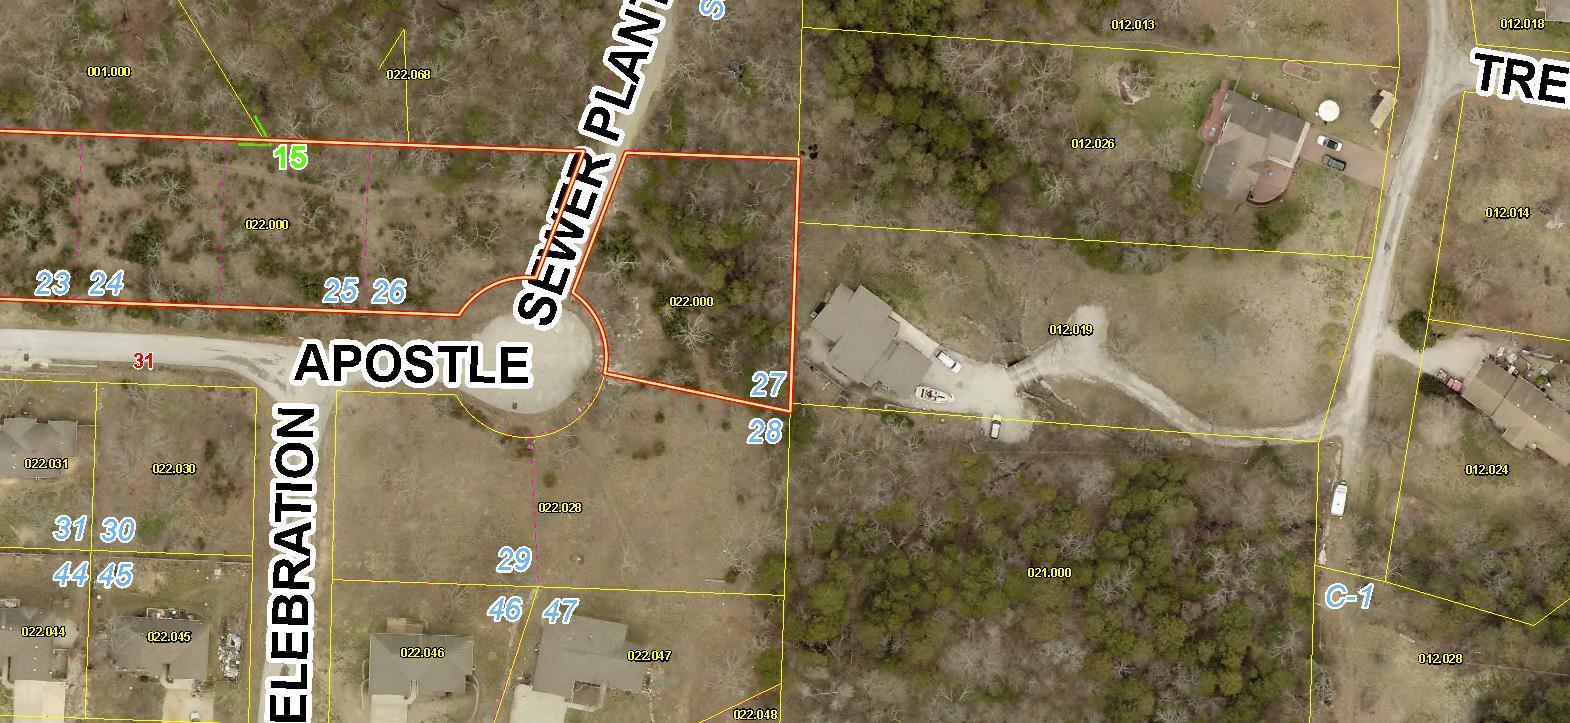 000 Apostle UNIT Lot 27 Reeds Spring, MO 65737